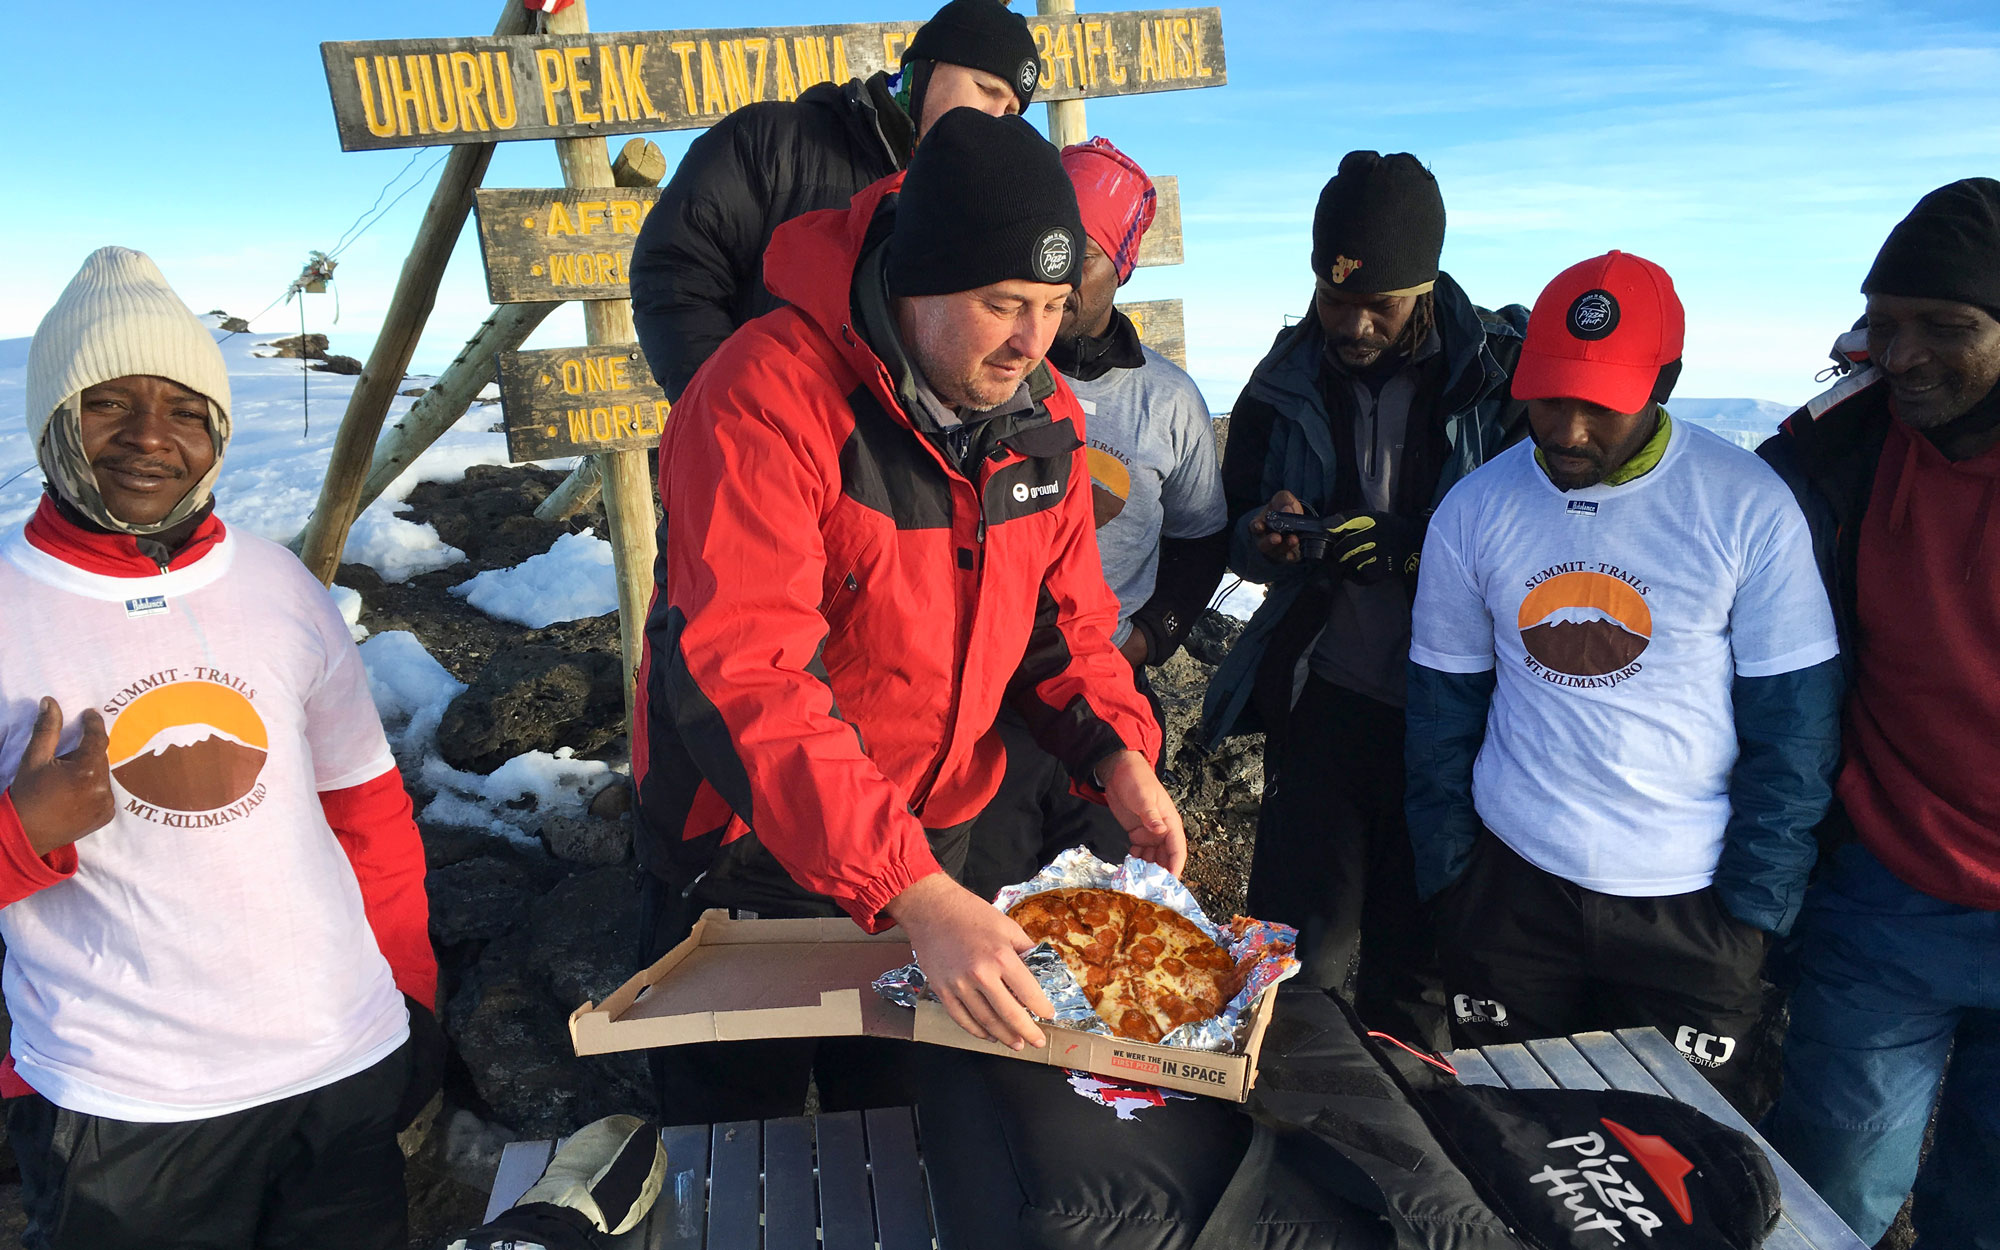 Pizza Hut Just Delivered A Pizza To The Top of Mt. Kilimanjaro